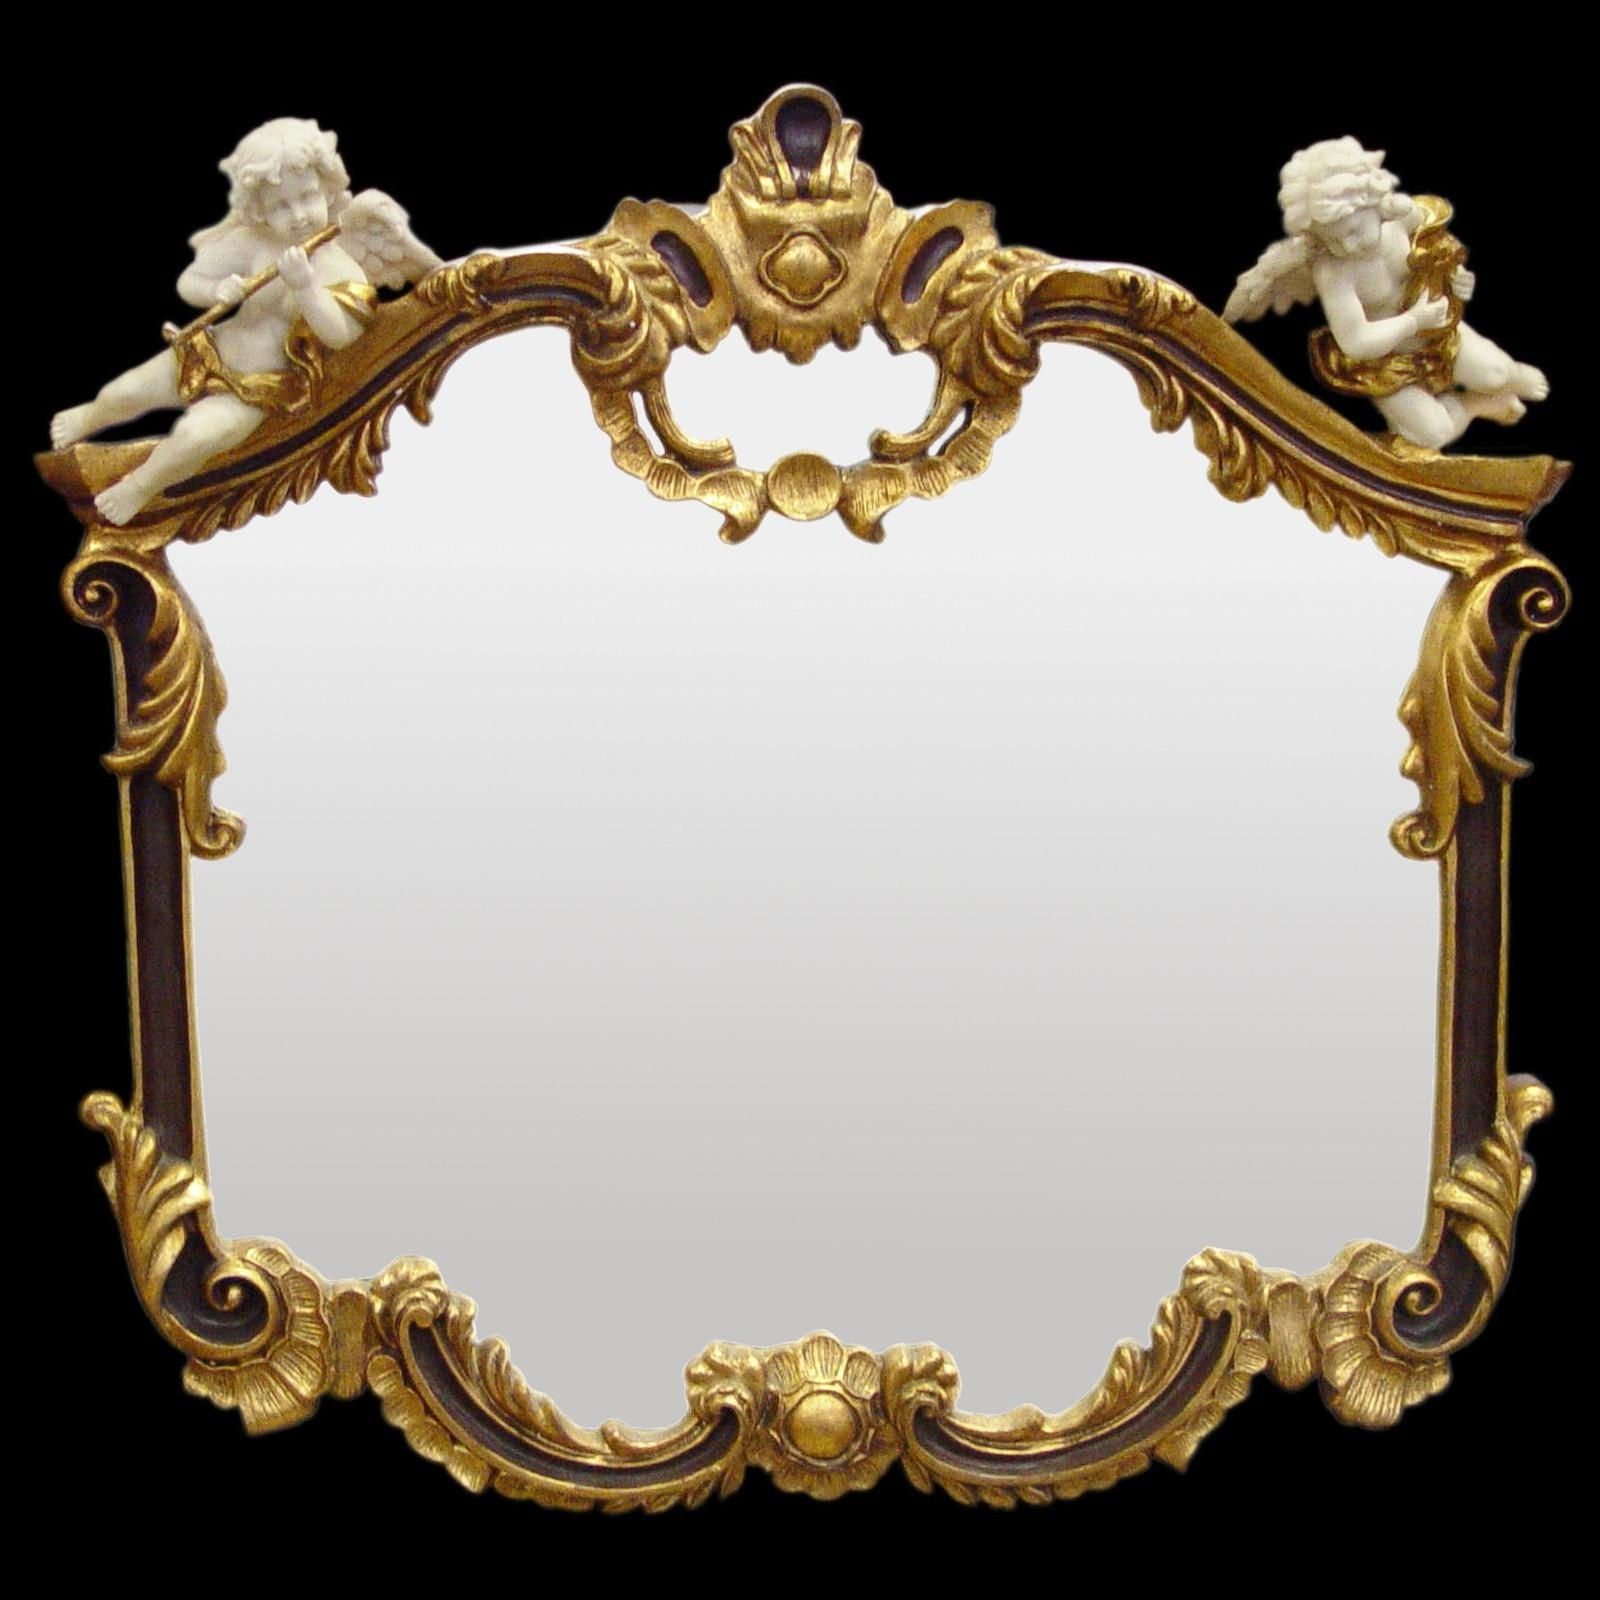 Baroque Mirror Wall Mirror Gold Red 2 White Music Angel Figurines For Baroque Mirror Gold (Image 10 of 20)